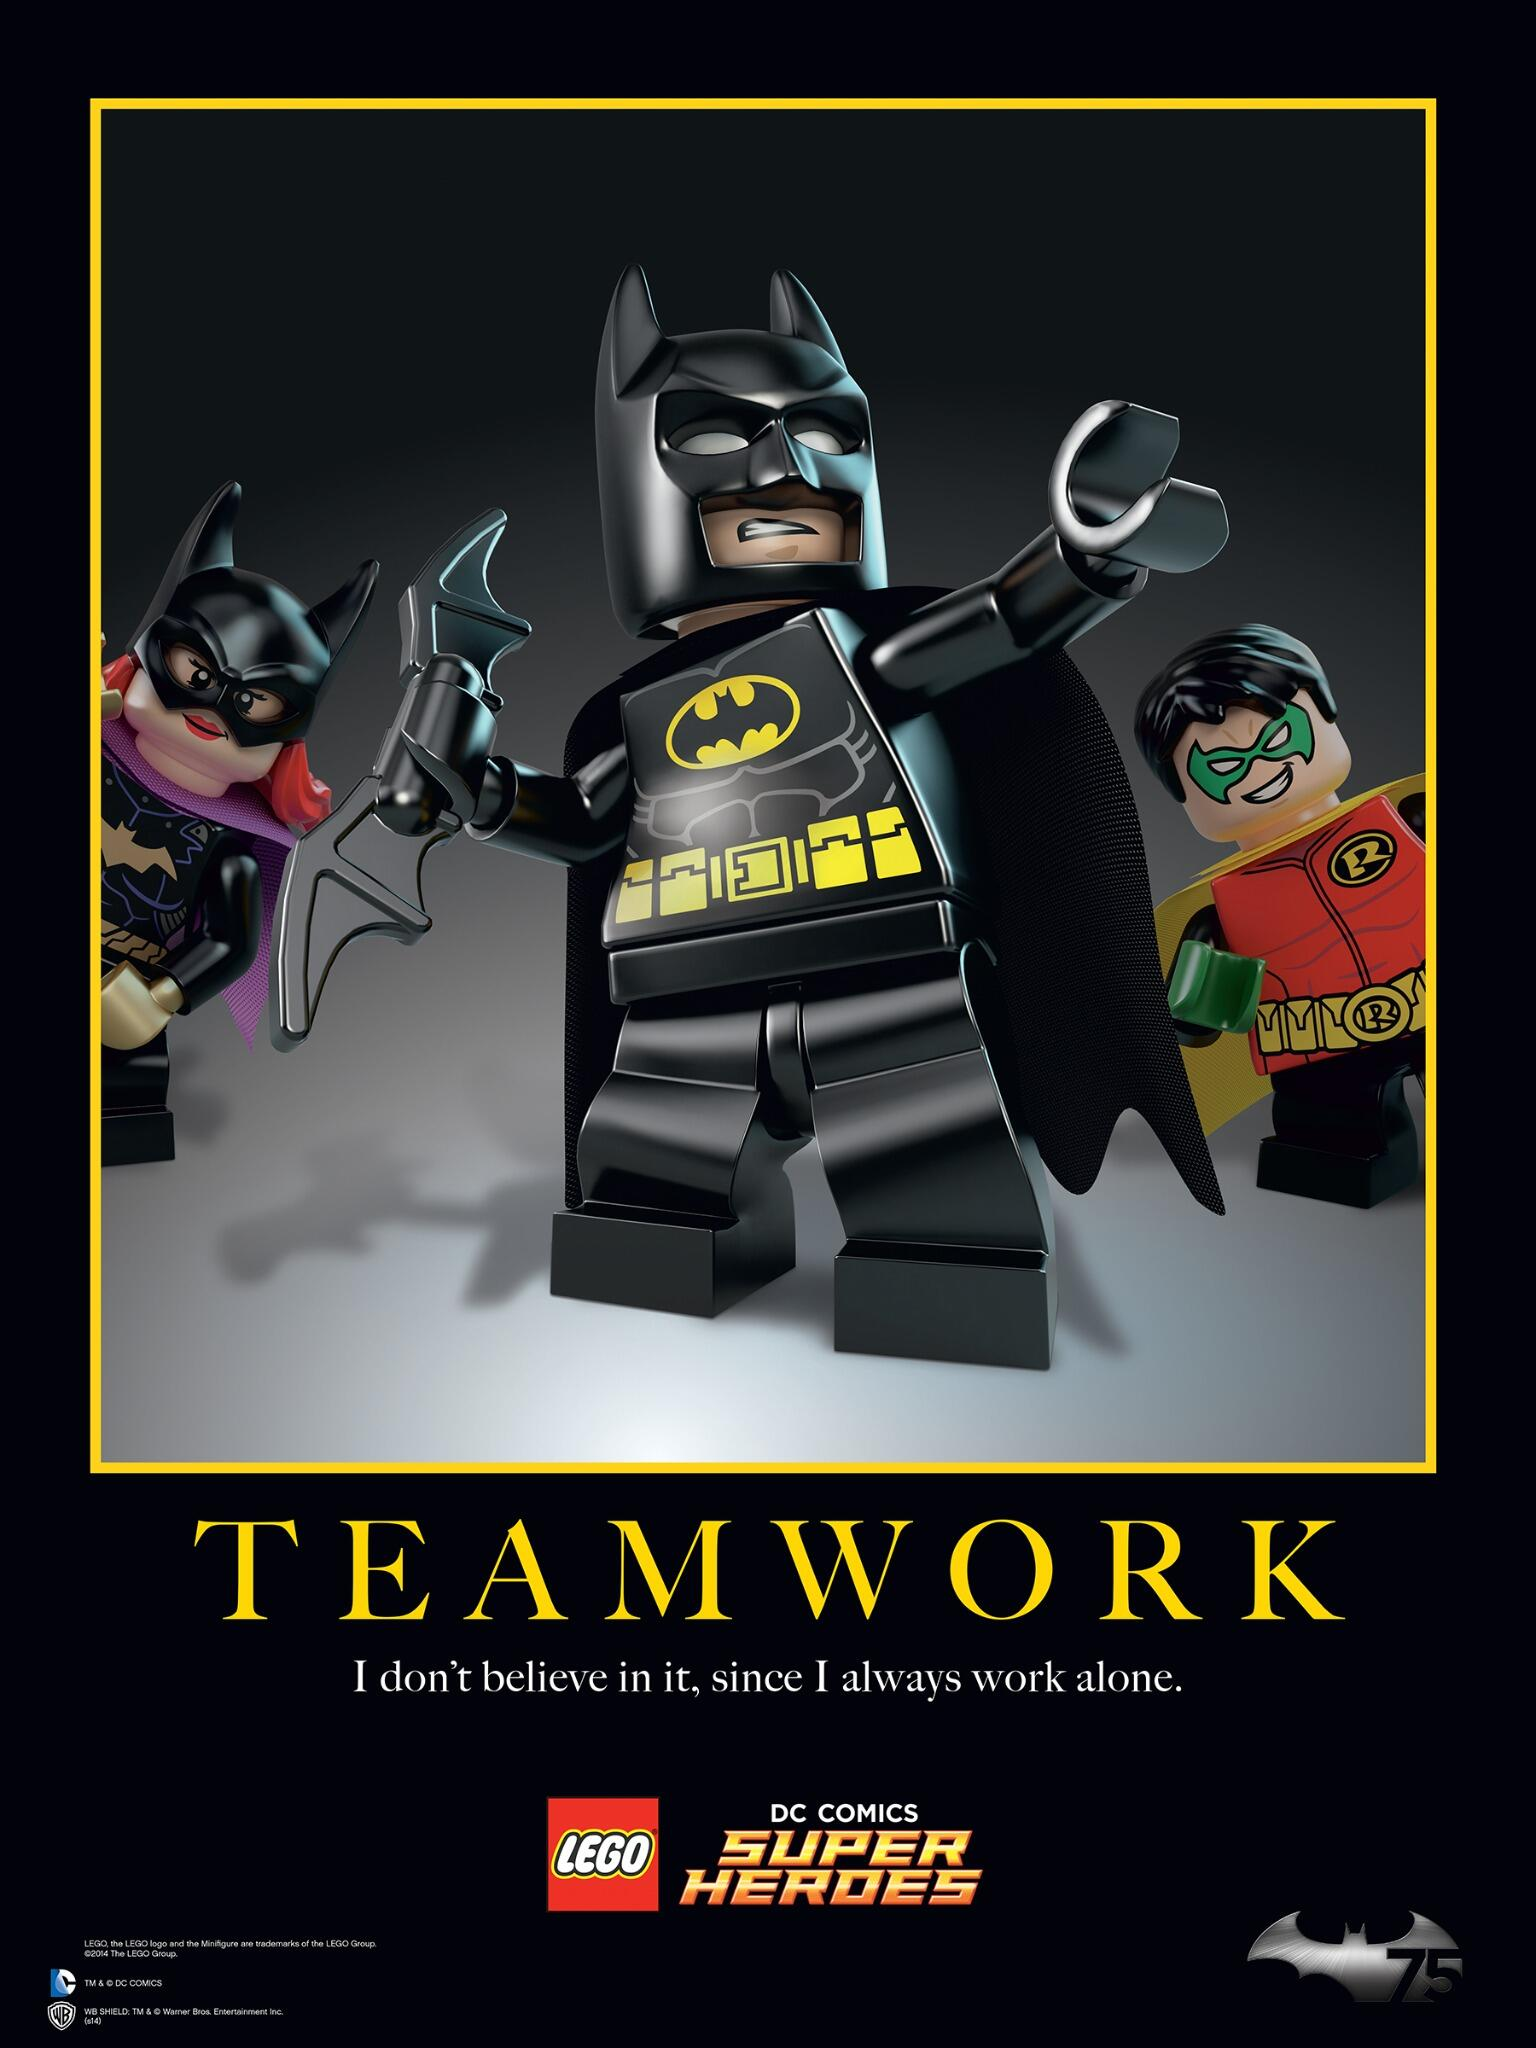 Lego On Twitter Quot Teamwork Quot I Don T Believe In It Since